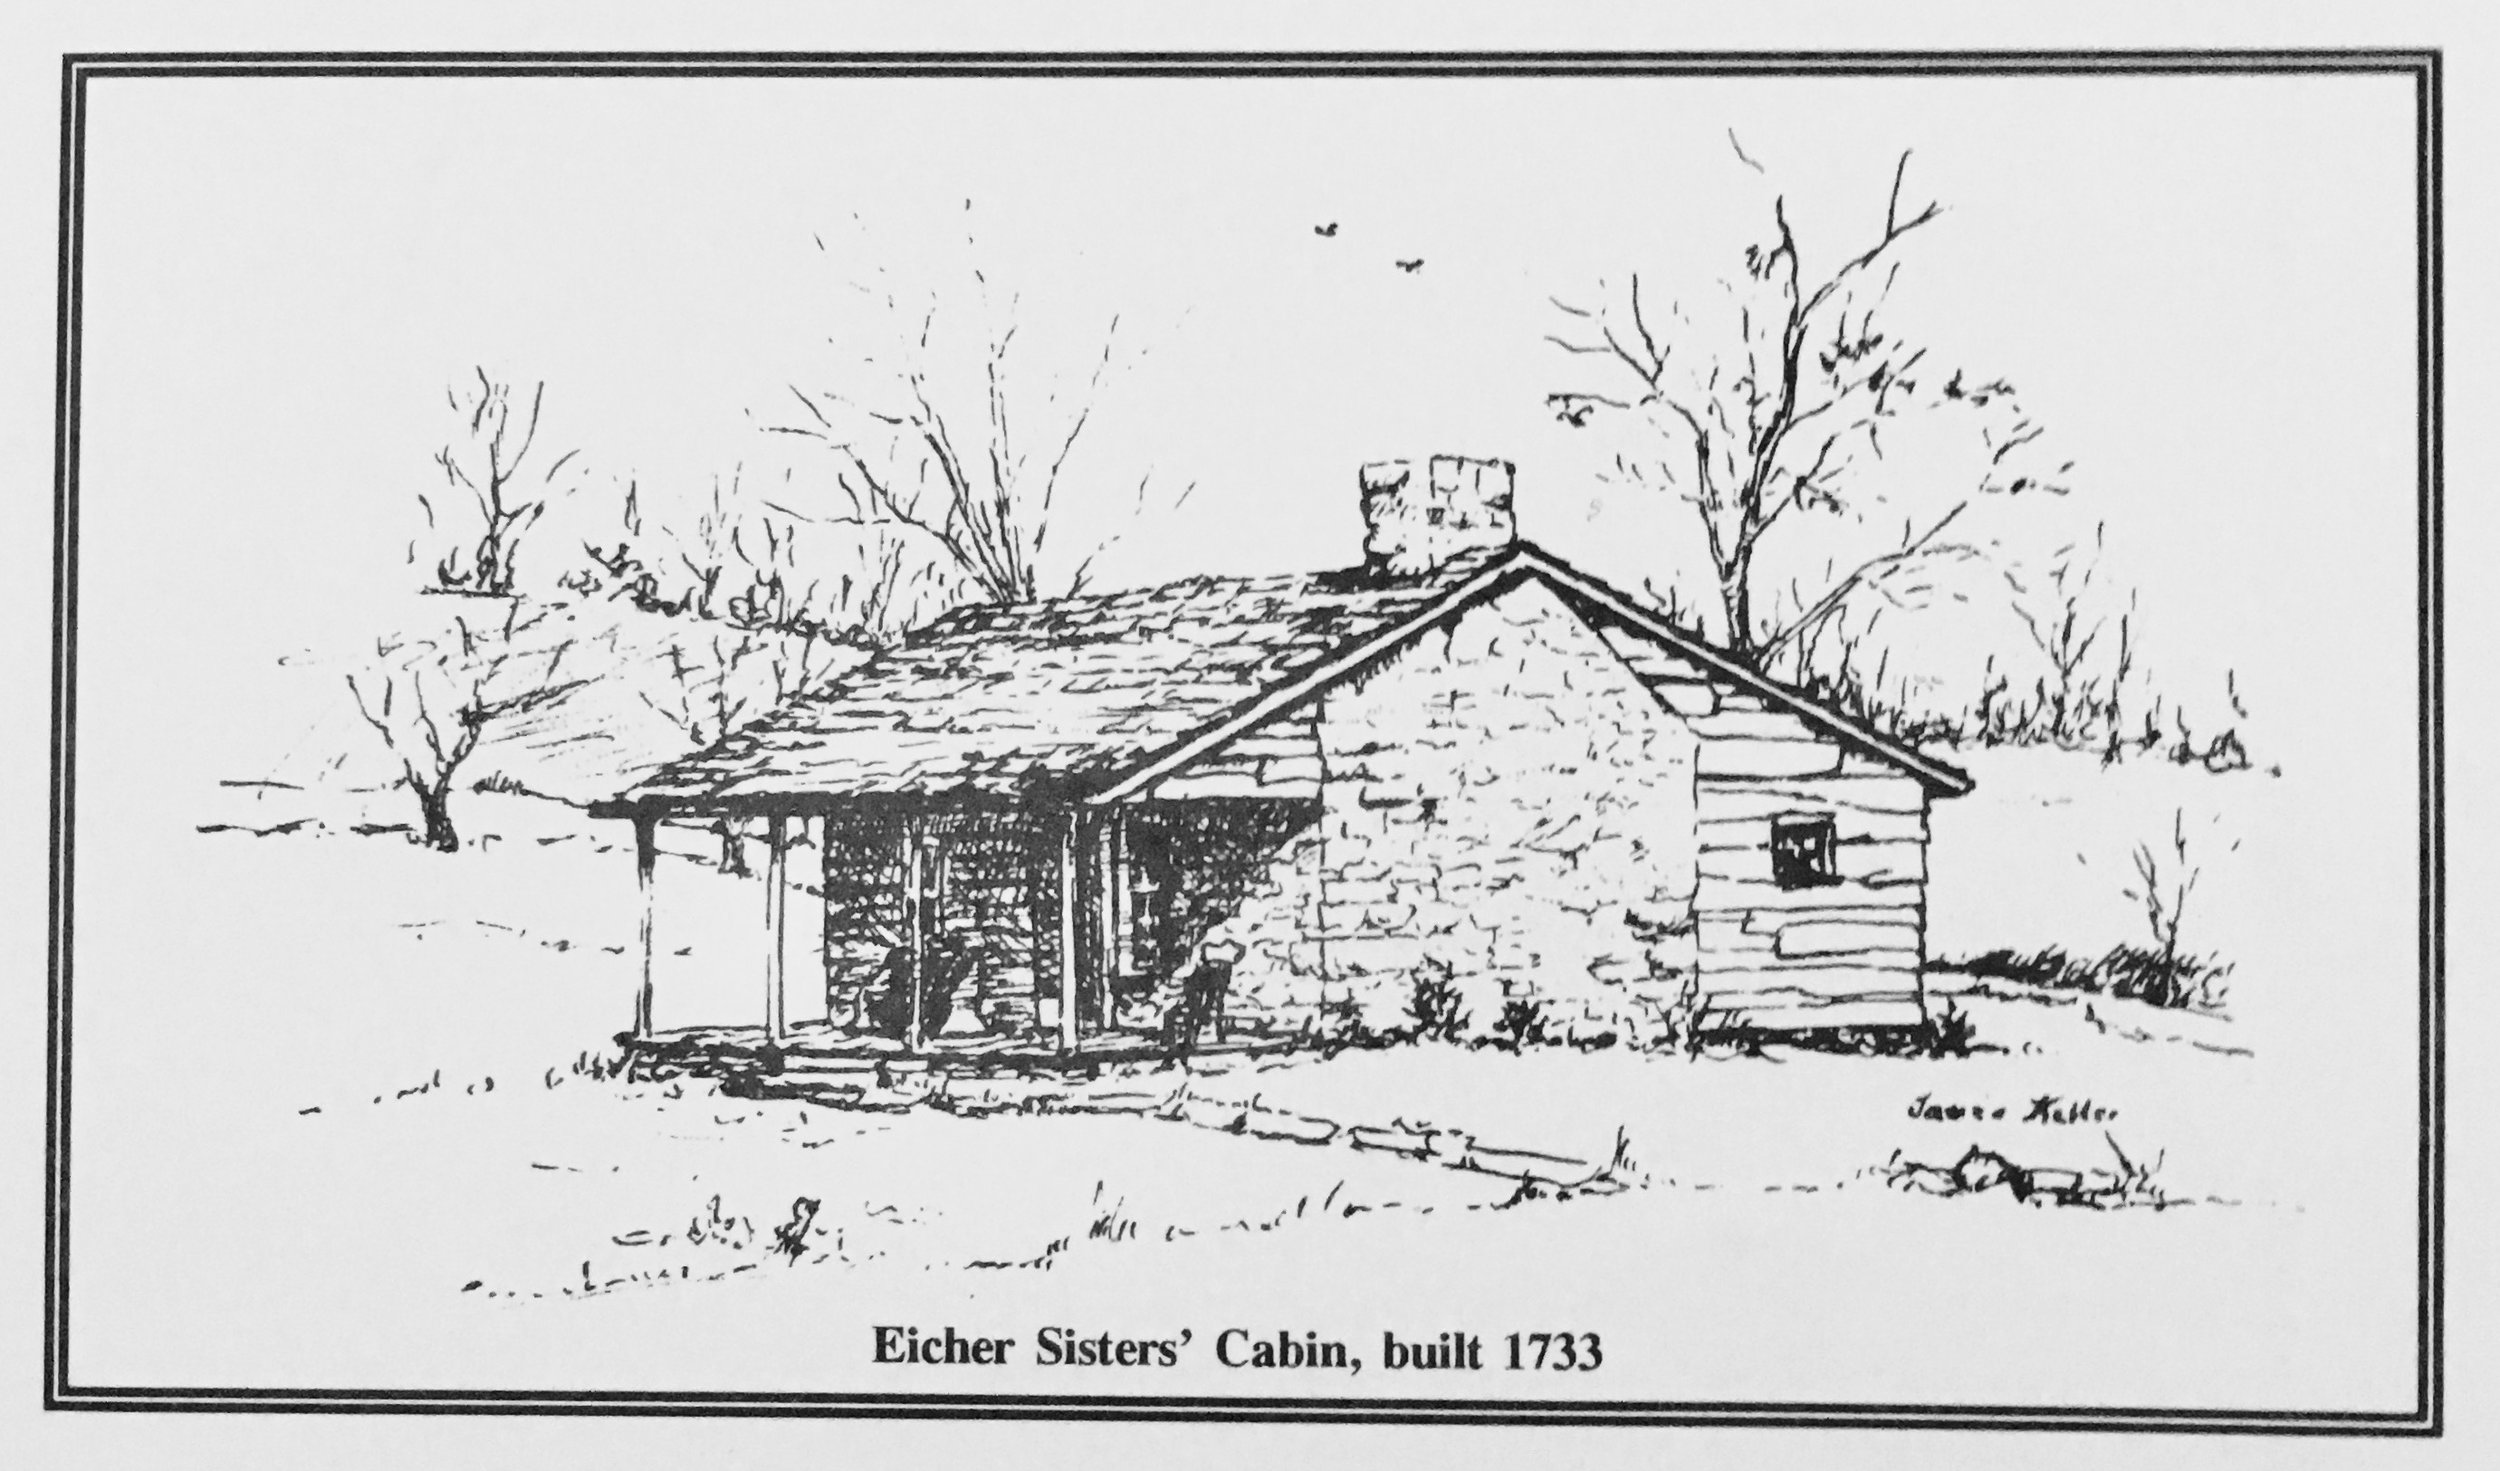 The Eicher Sisters' Cabin is the present day Indian Museum and Shop.